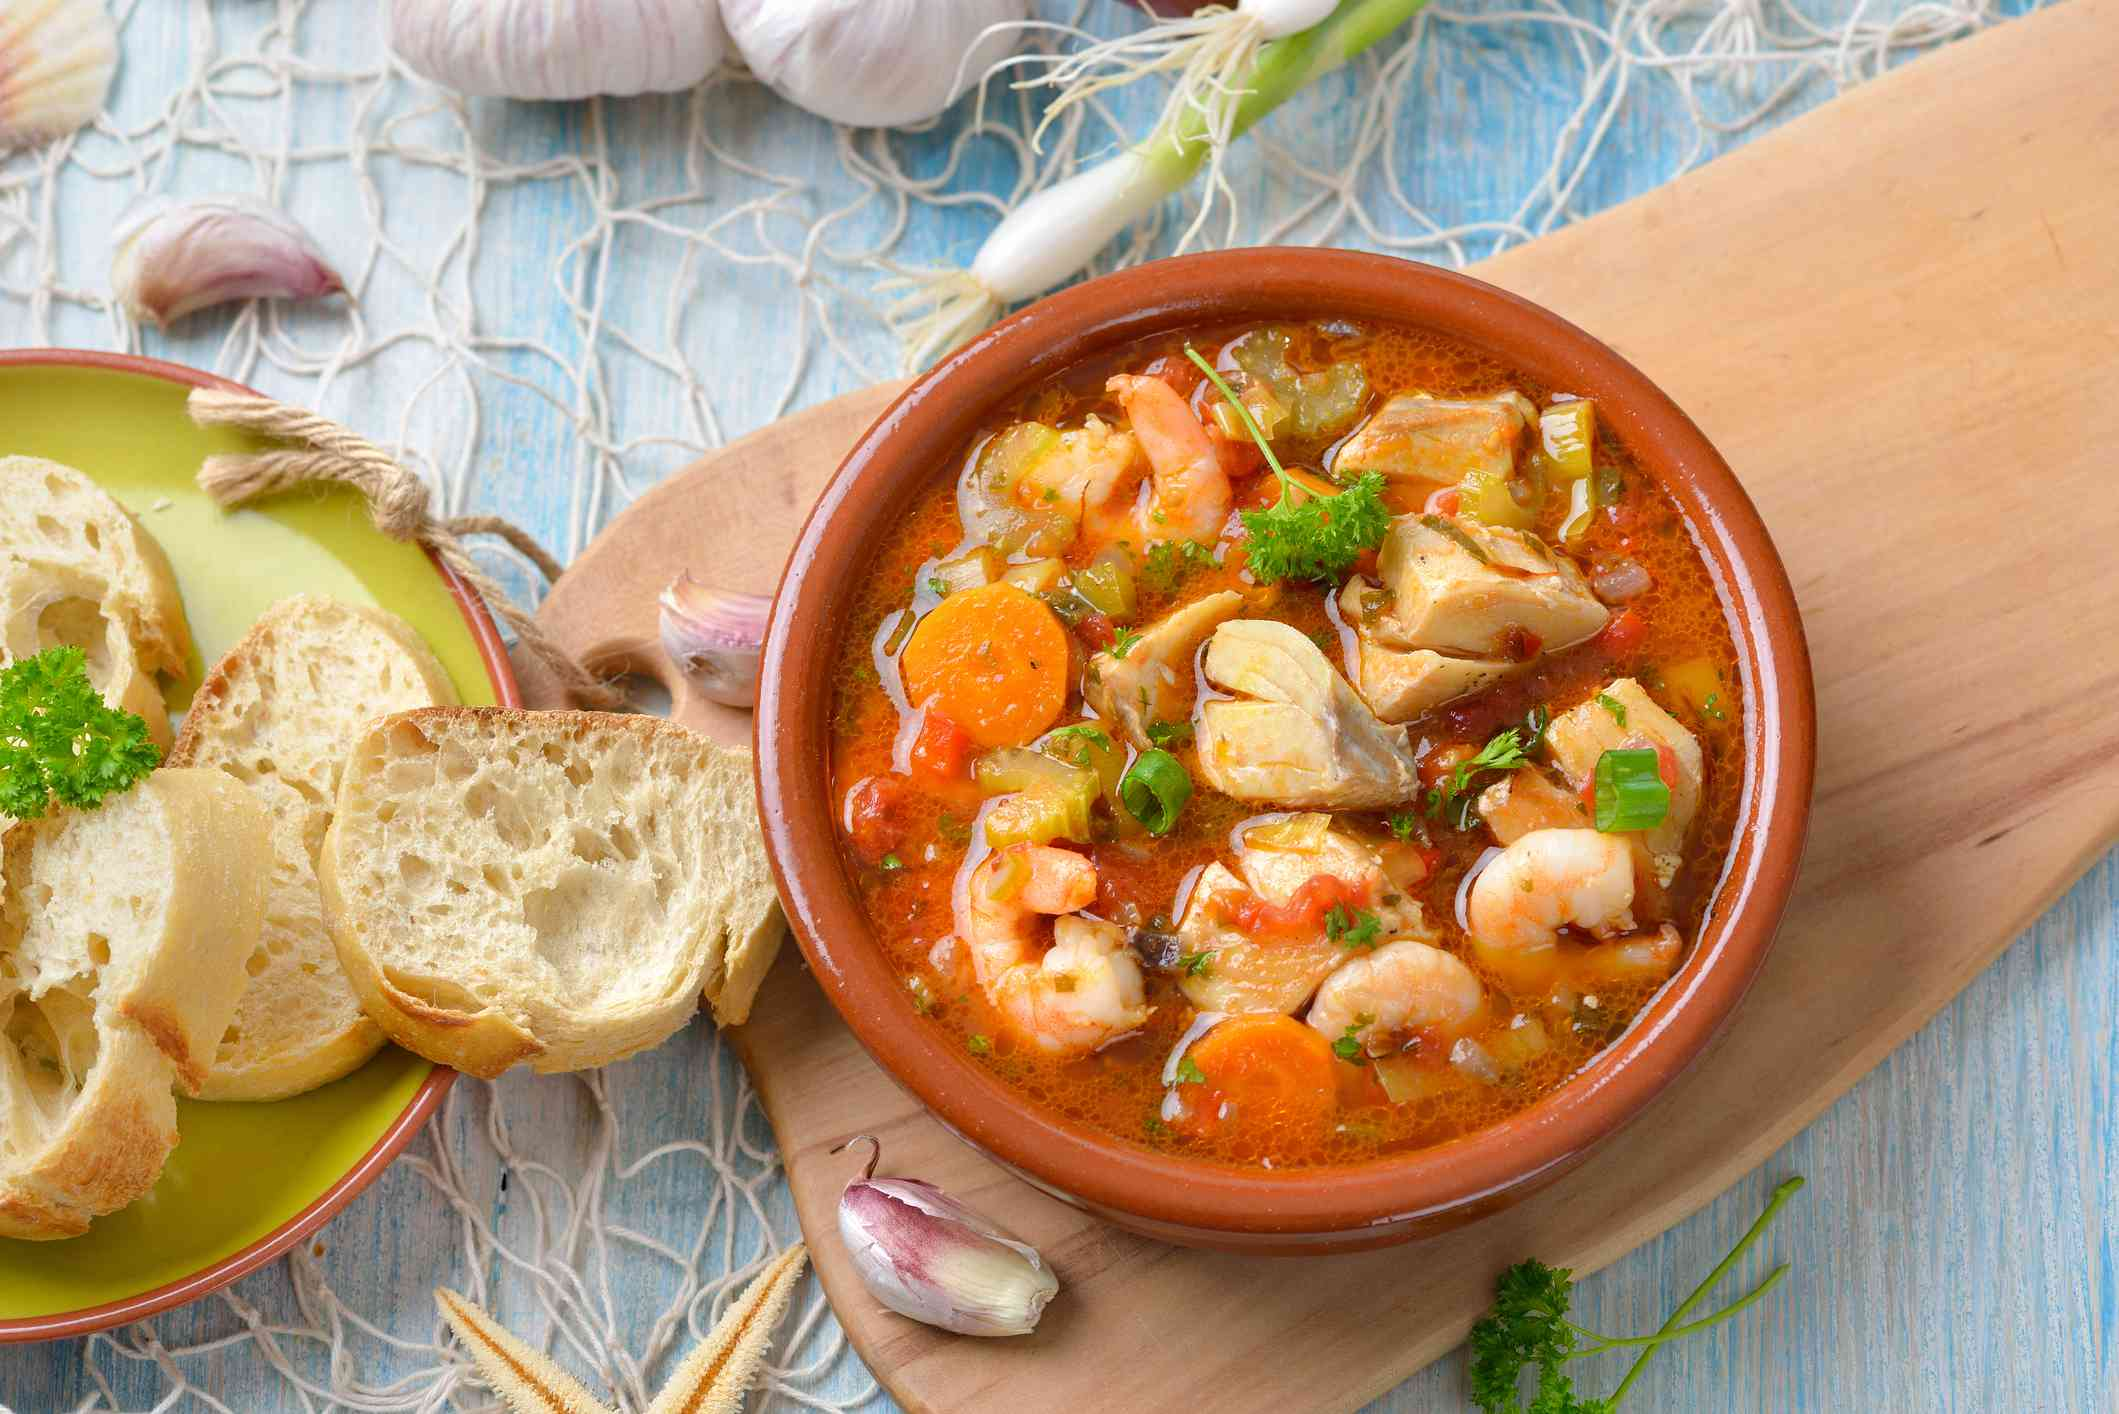 Bouillabaisse, fish stew traditional to Marseille, France